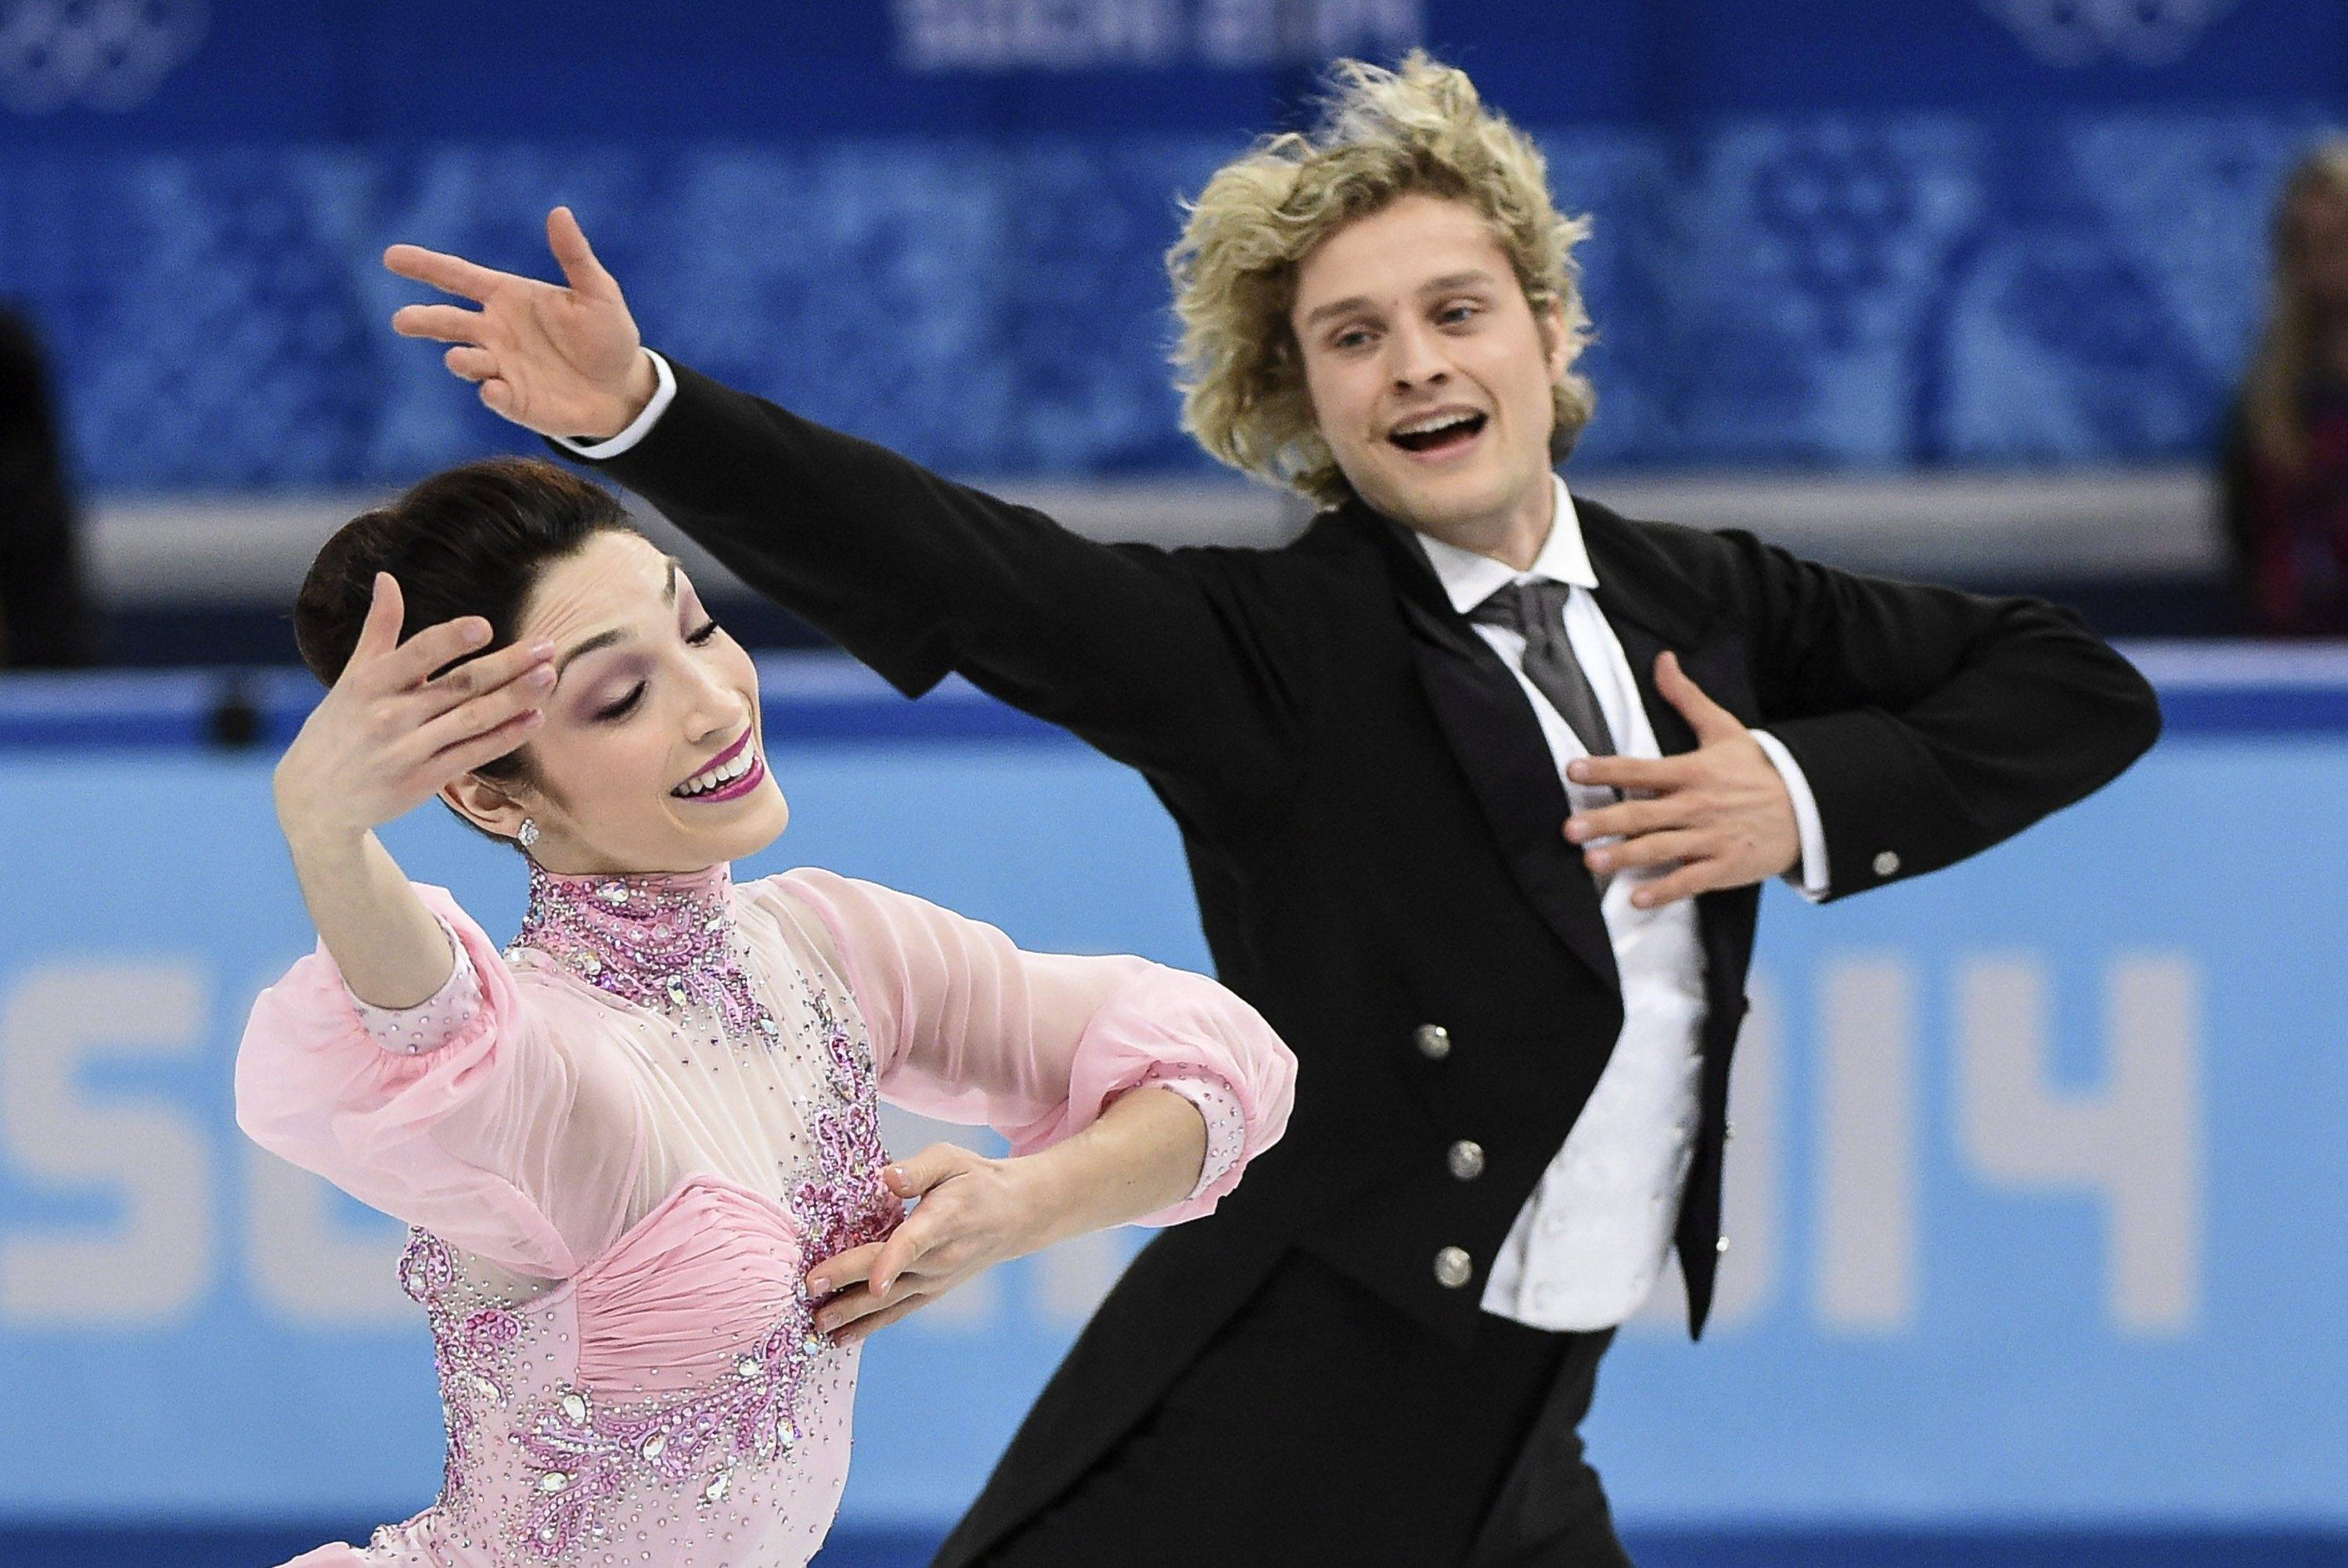 Meryl Davis and Charlie White, of the United States, compete in the ice dance short dance figure skating competition Sunday at the Iceberg Skating Palace during the Winter Olympics in Sochi, Russia.